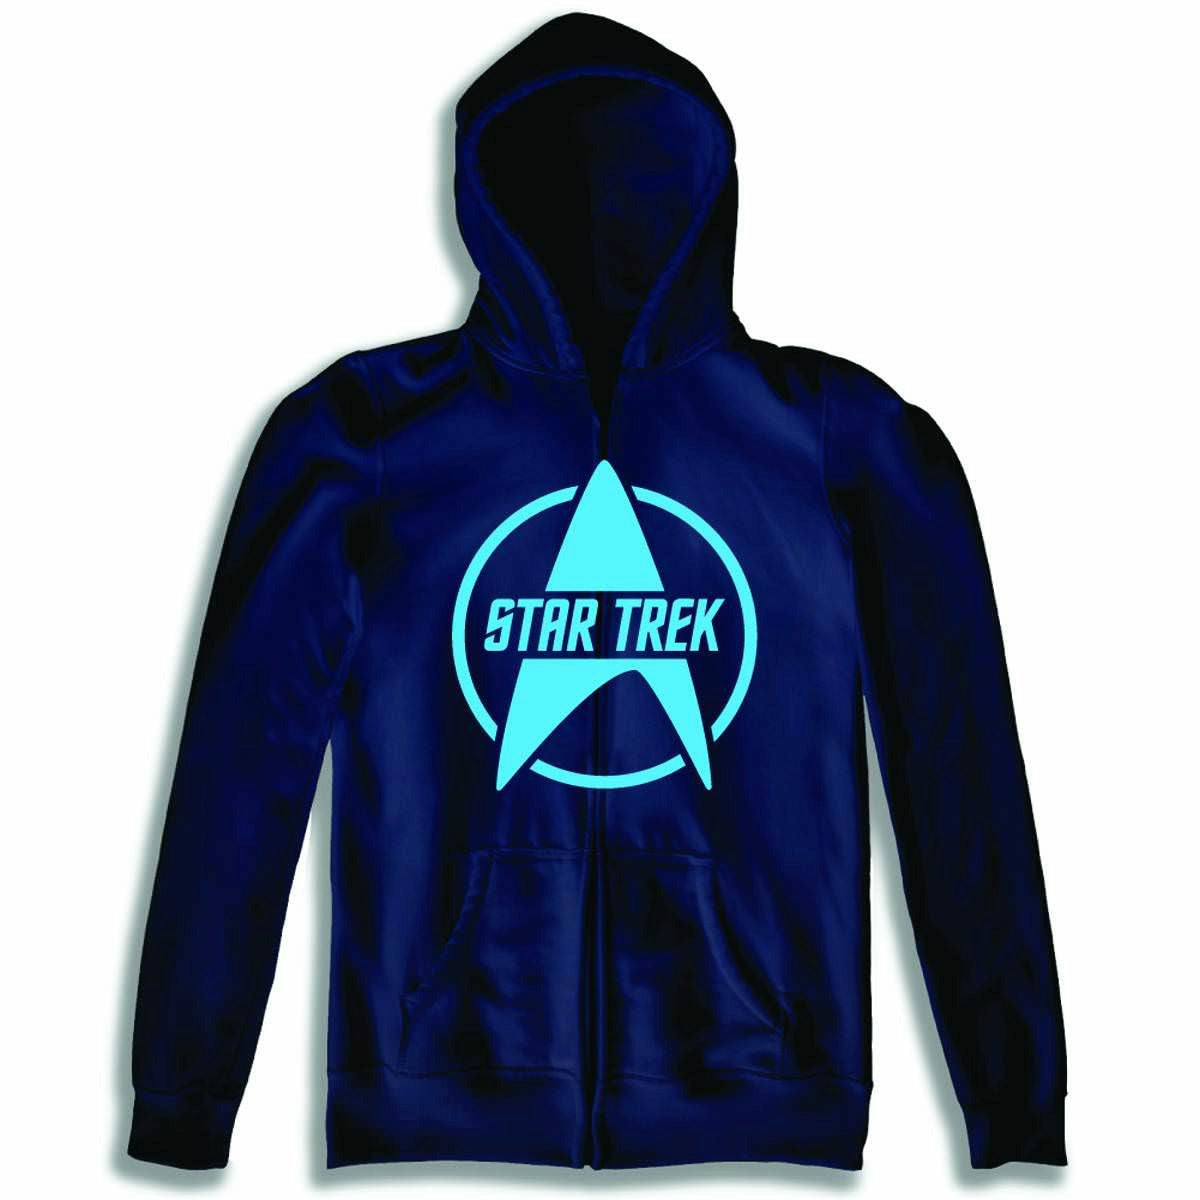 Star Trek Logo Blue Zip Up Hoodie Sweatshirt